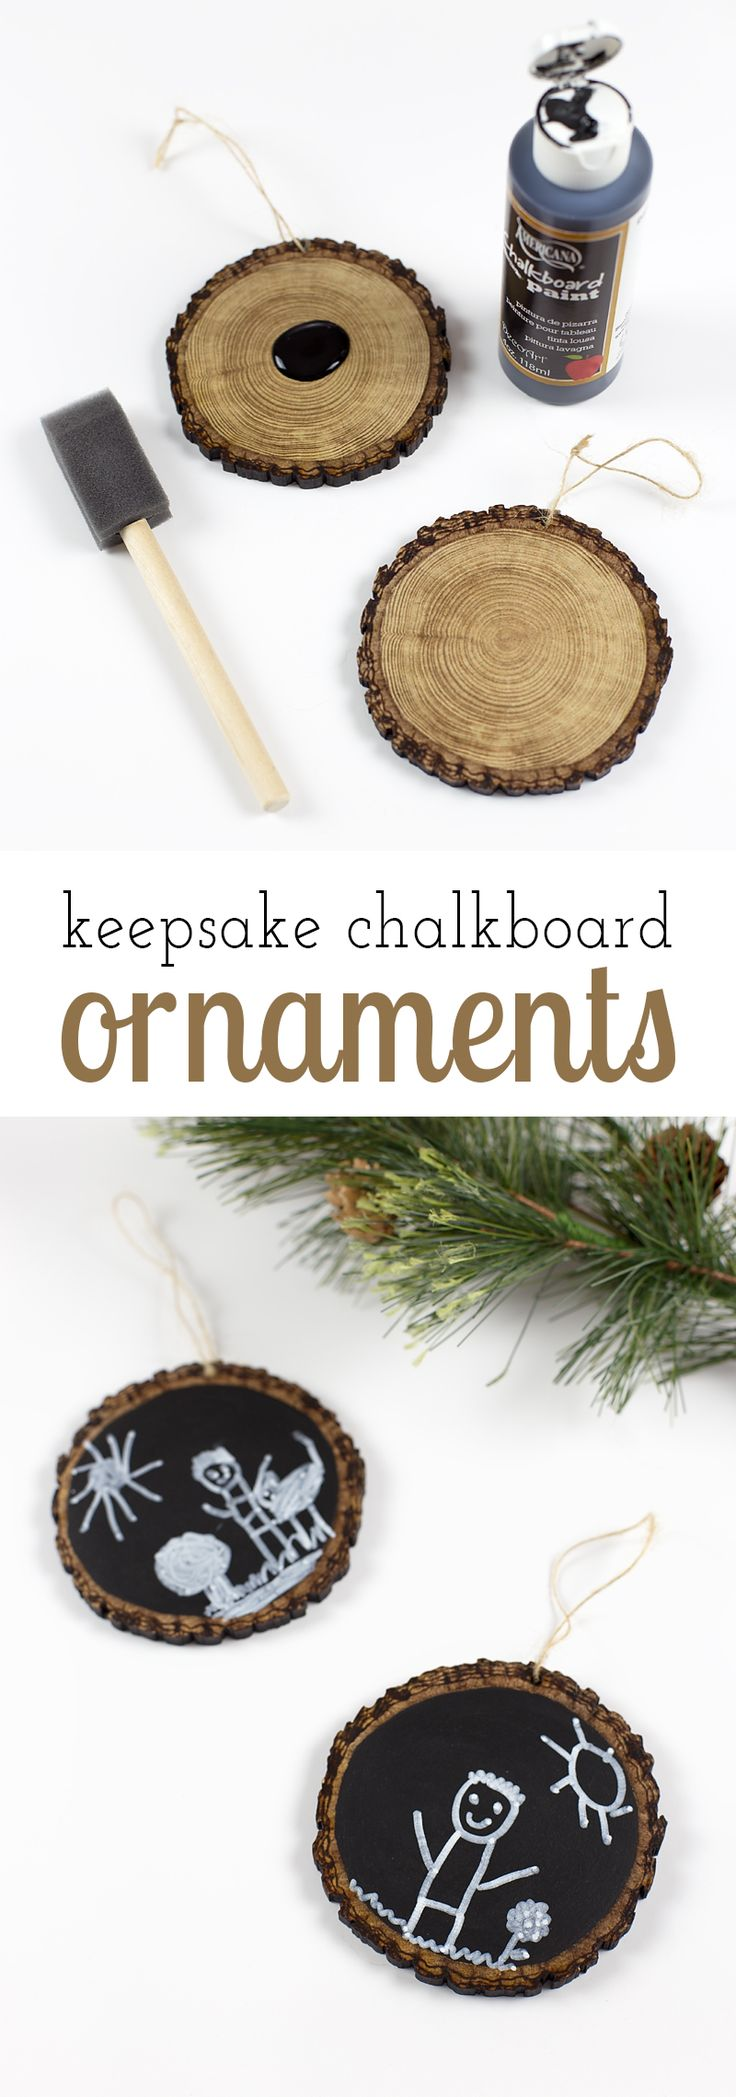 Easy Keepsake Chalkboard Ornaments, guaranteed to make your heart swoon every Christmas. An Christmas craft for kids to make. via @https://www.pinterest.com/fireflymudpie/